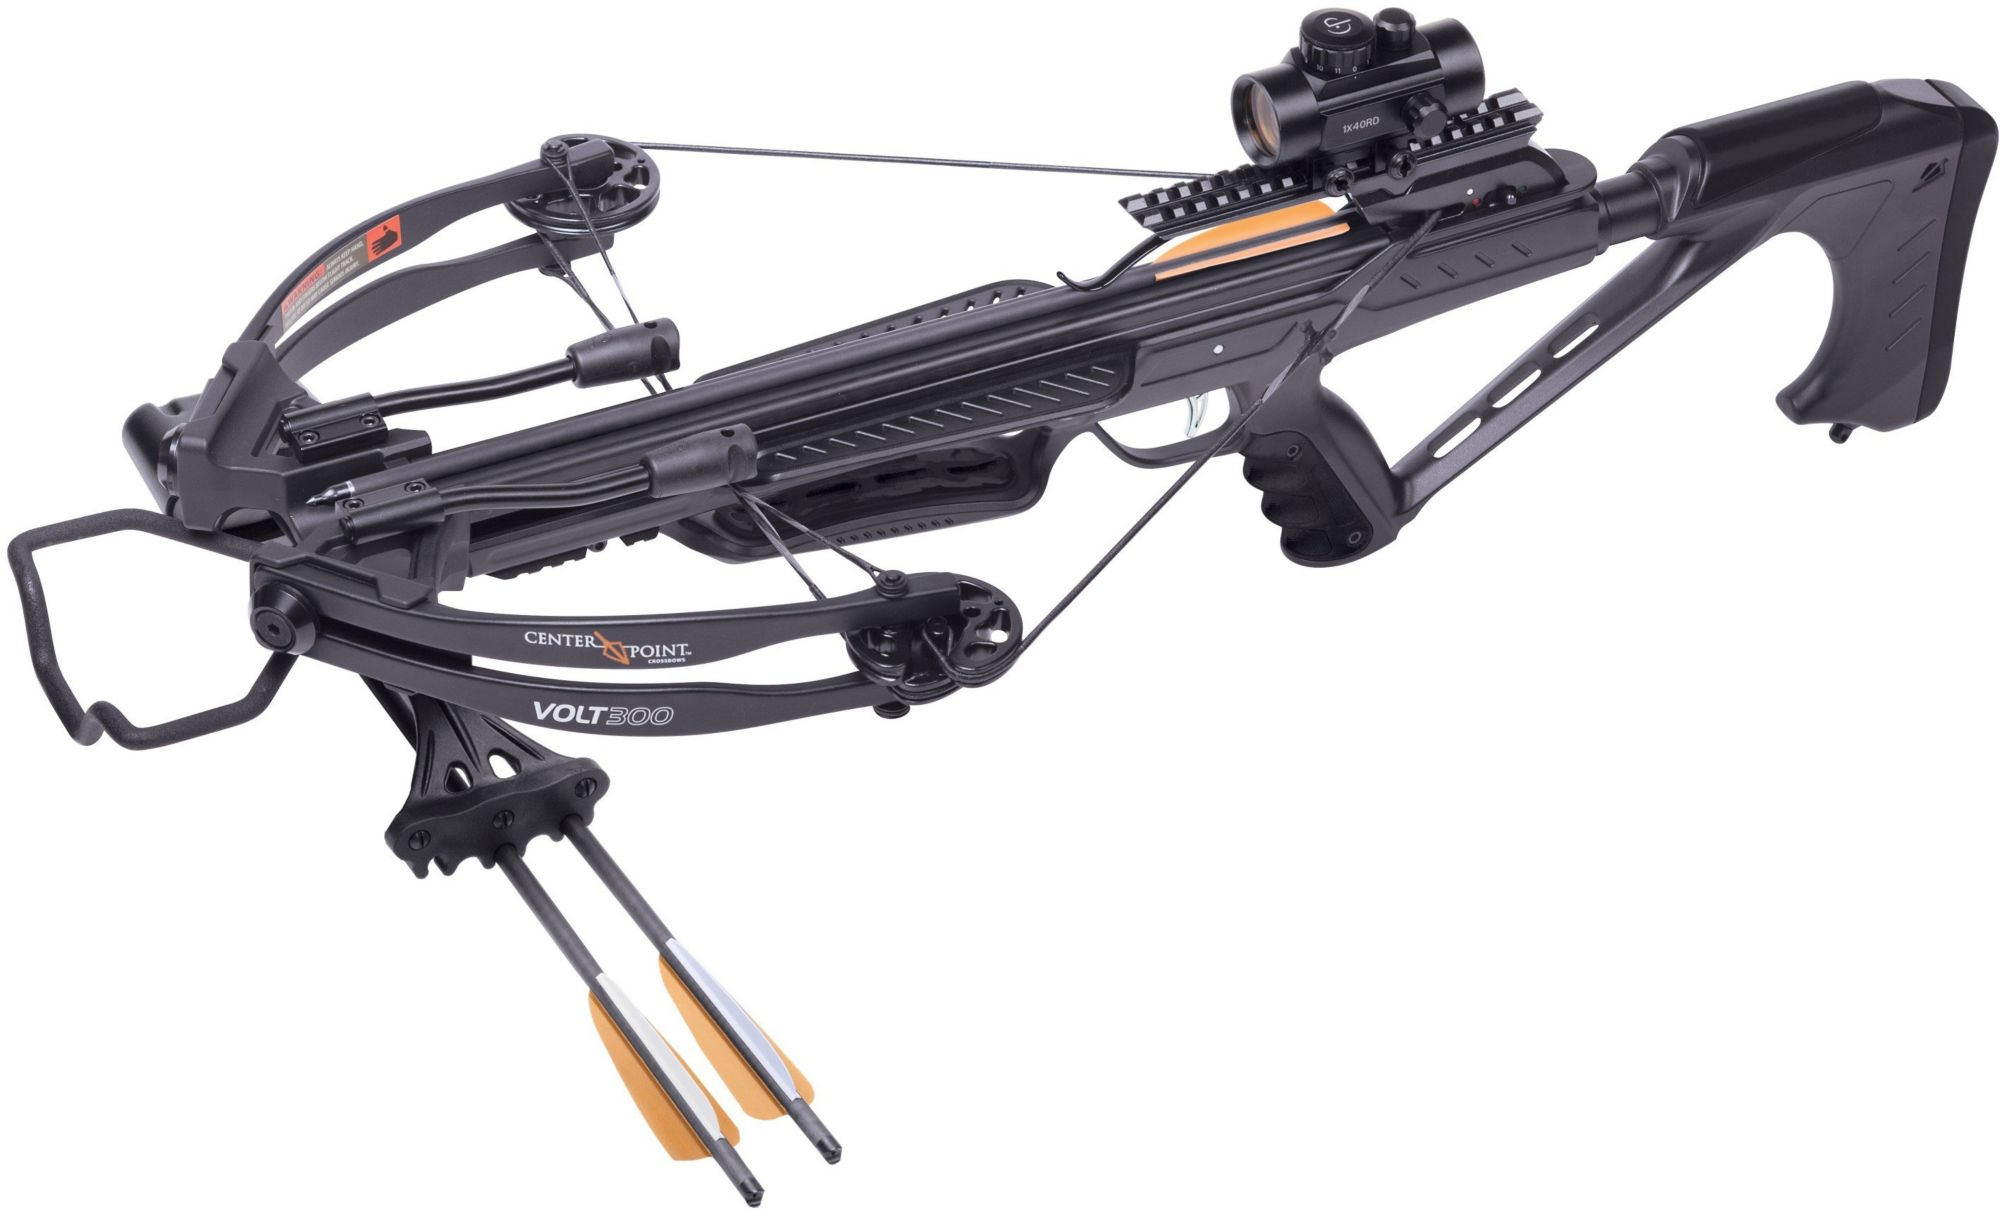 CenterPoint Volt 300 Youth Crossbow Package - 3 Dot Illuminated Sight, Blac/White/Black thumbnail